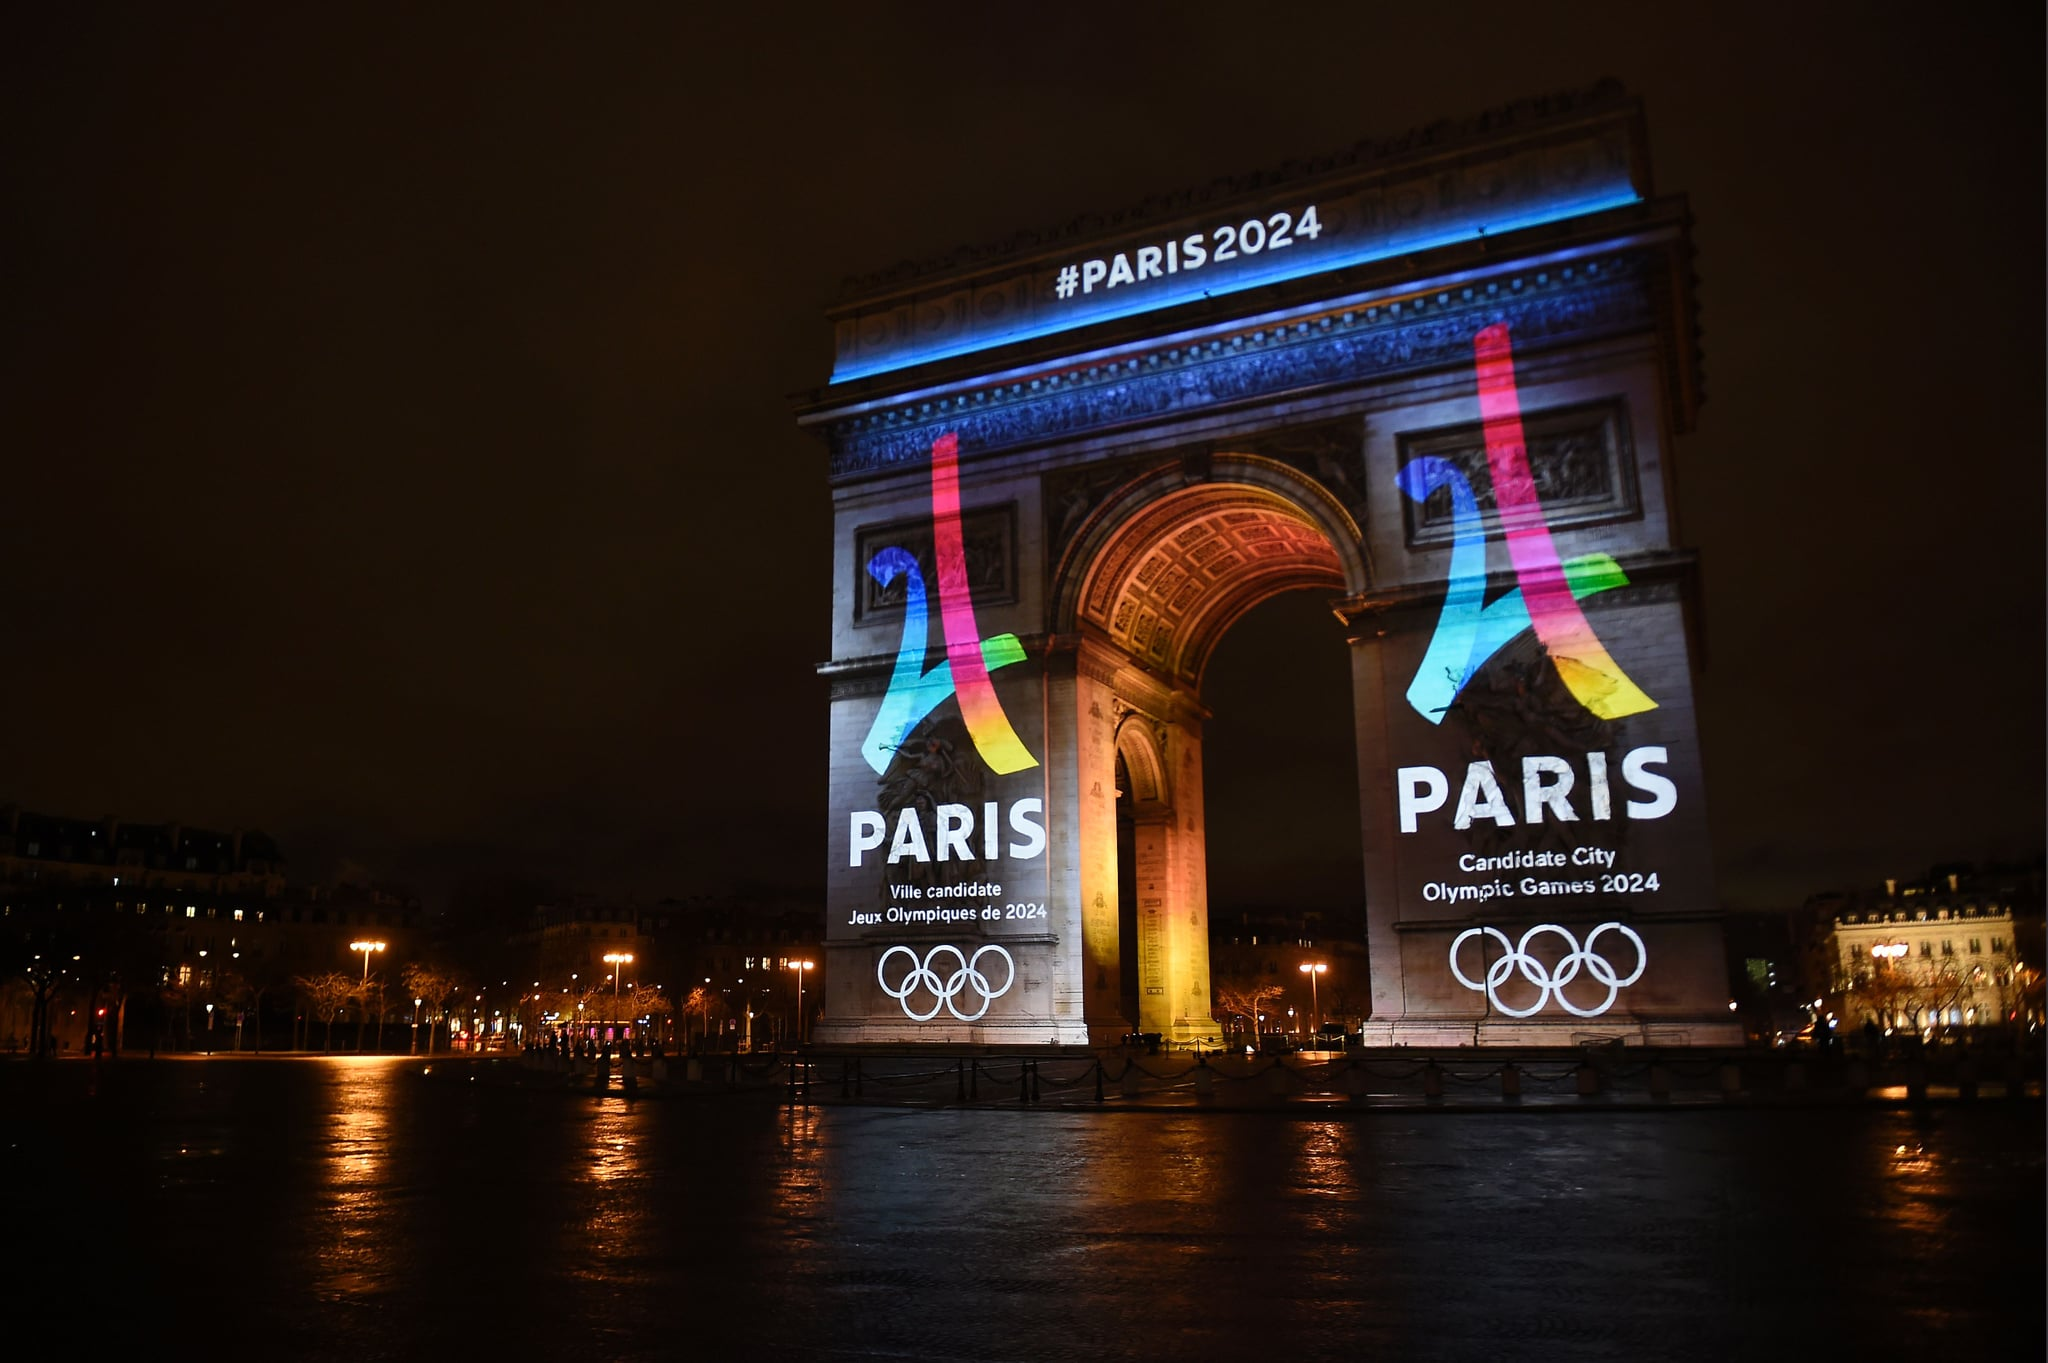 The campaign's official logo of the Paris bid to host the 2024 Olympic Games is seen on the Arc de Triomphe in Paris on February 9, 2016.  AFP PHOTO / LIONEL BONAVENTURE / AFP / LIONEL BONAVENTURE        (Photo credit should read LIONEL BONAVENTURE/AFP via Getty Images)